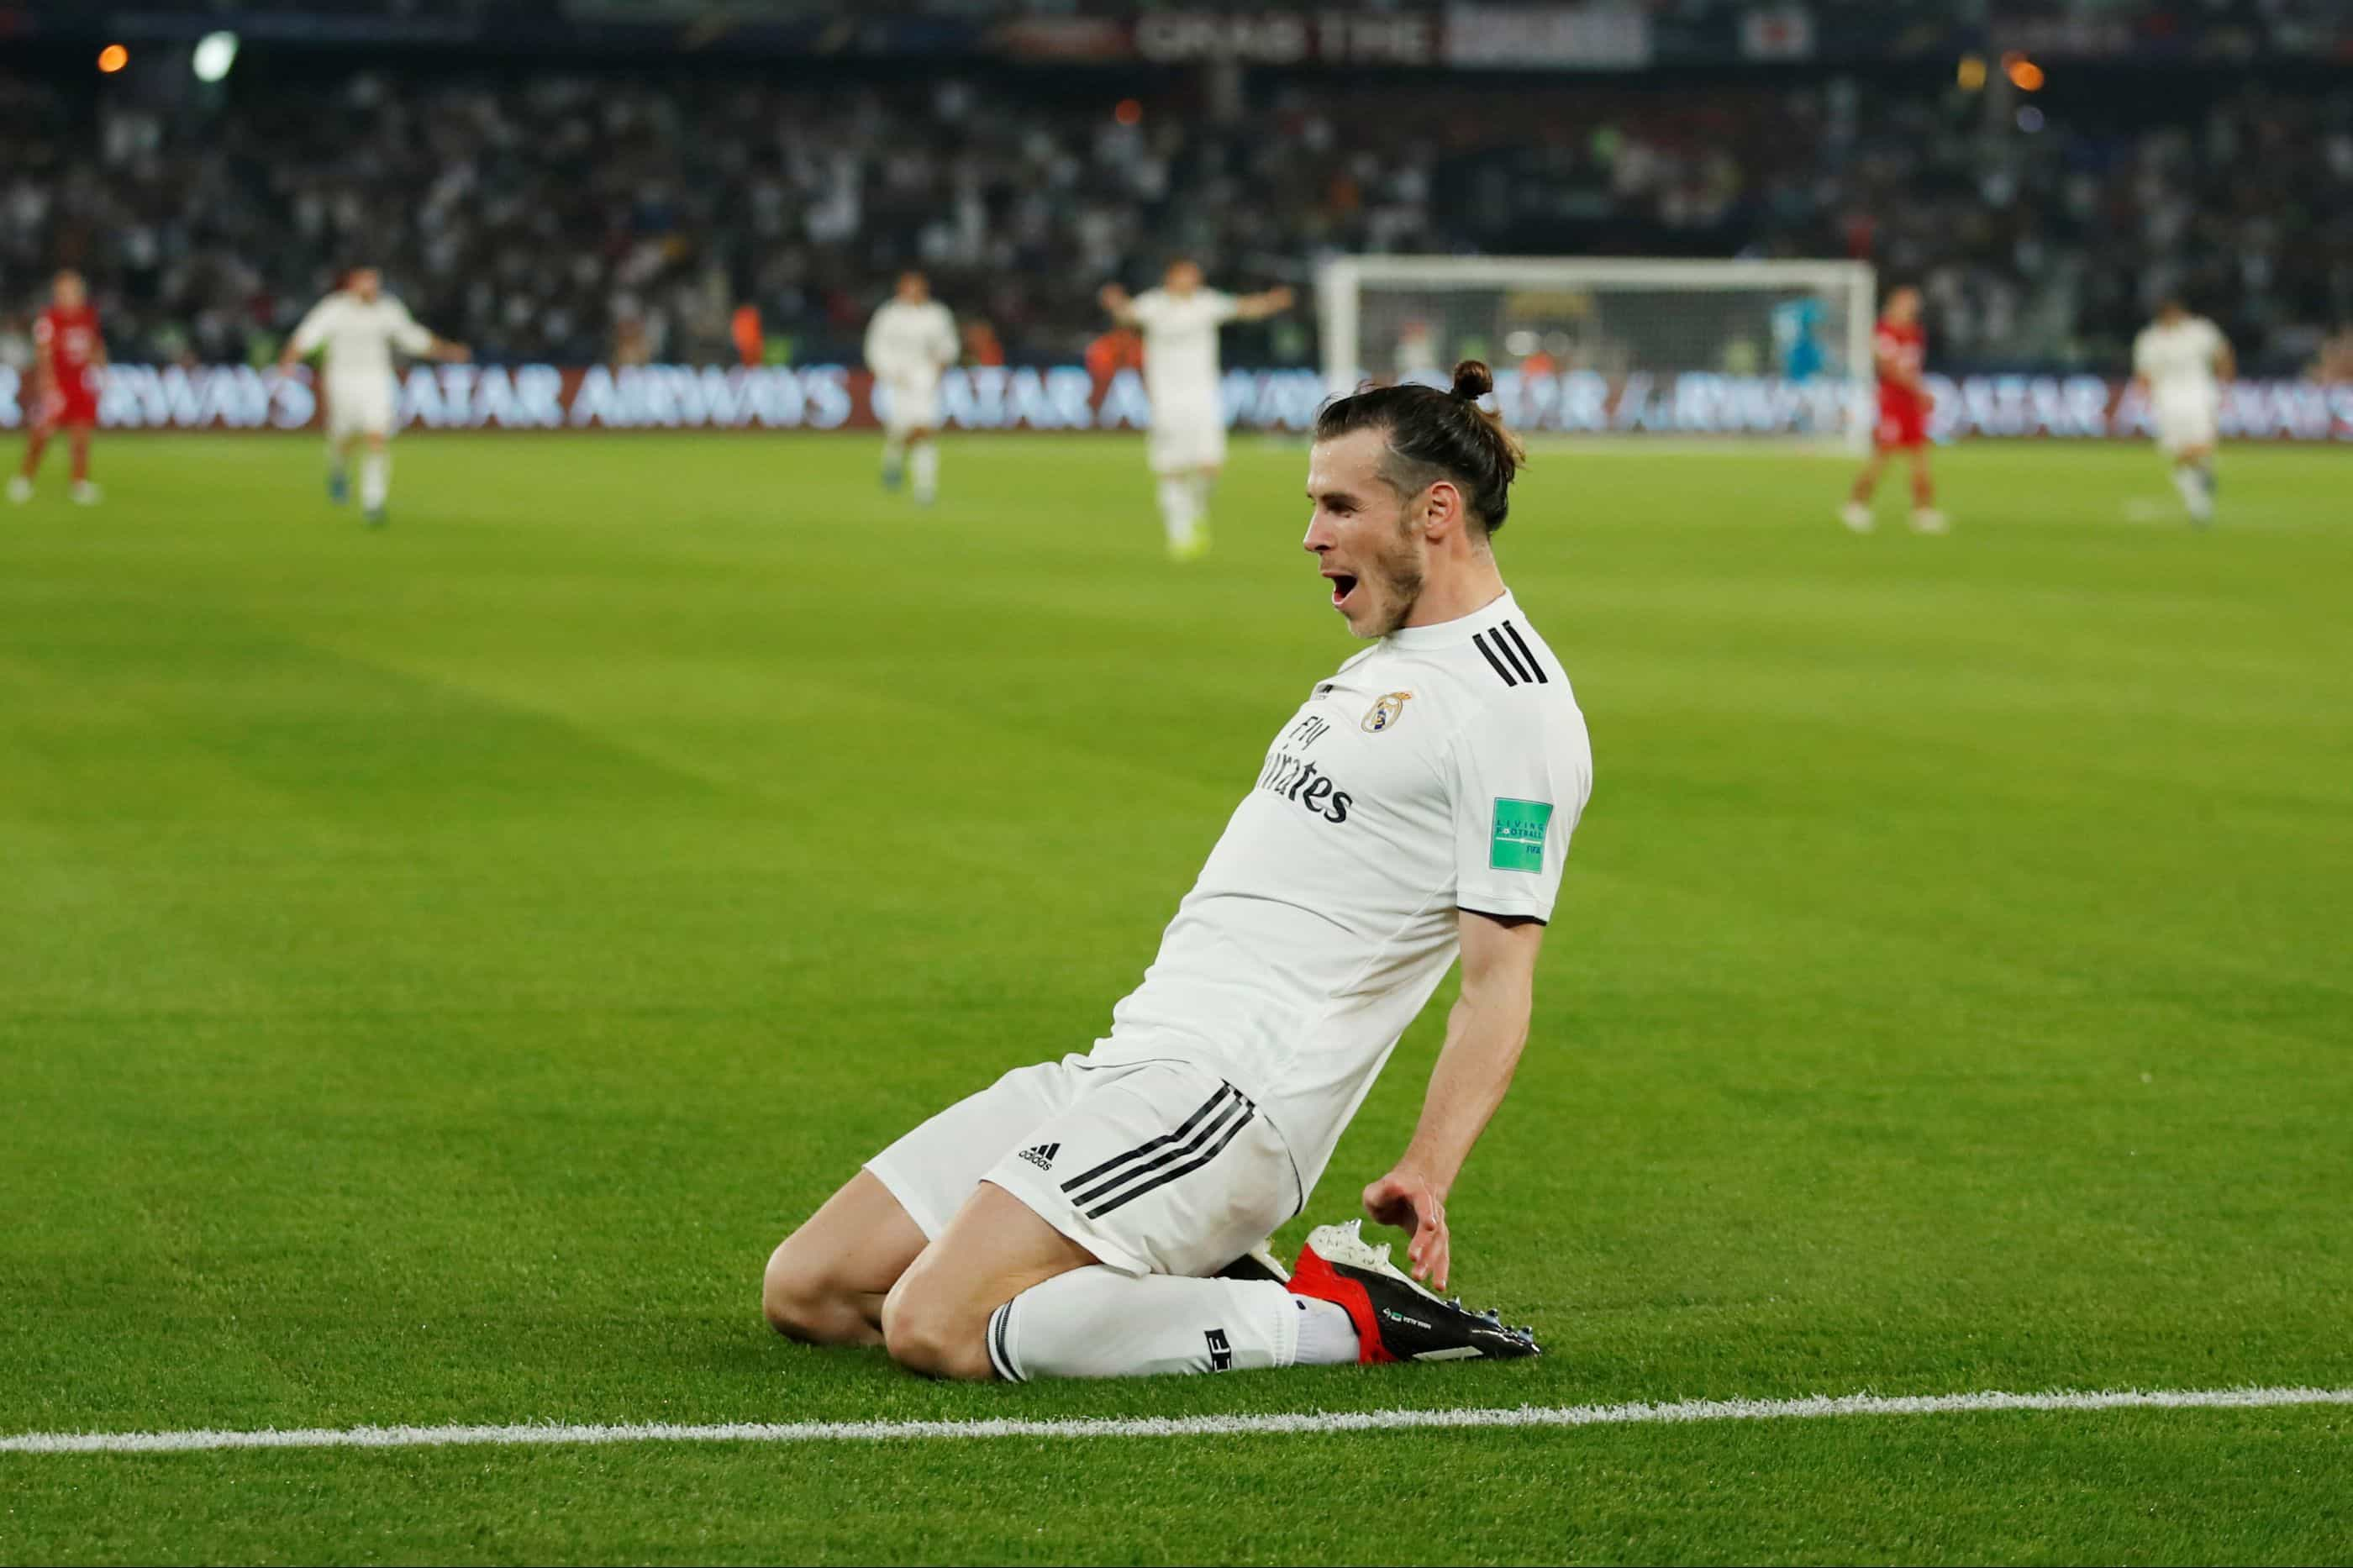 Bale sucede a CR7 e garante passagem do Real Madrid à final do Mundial